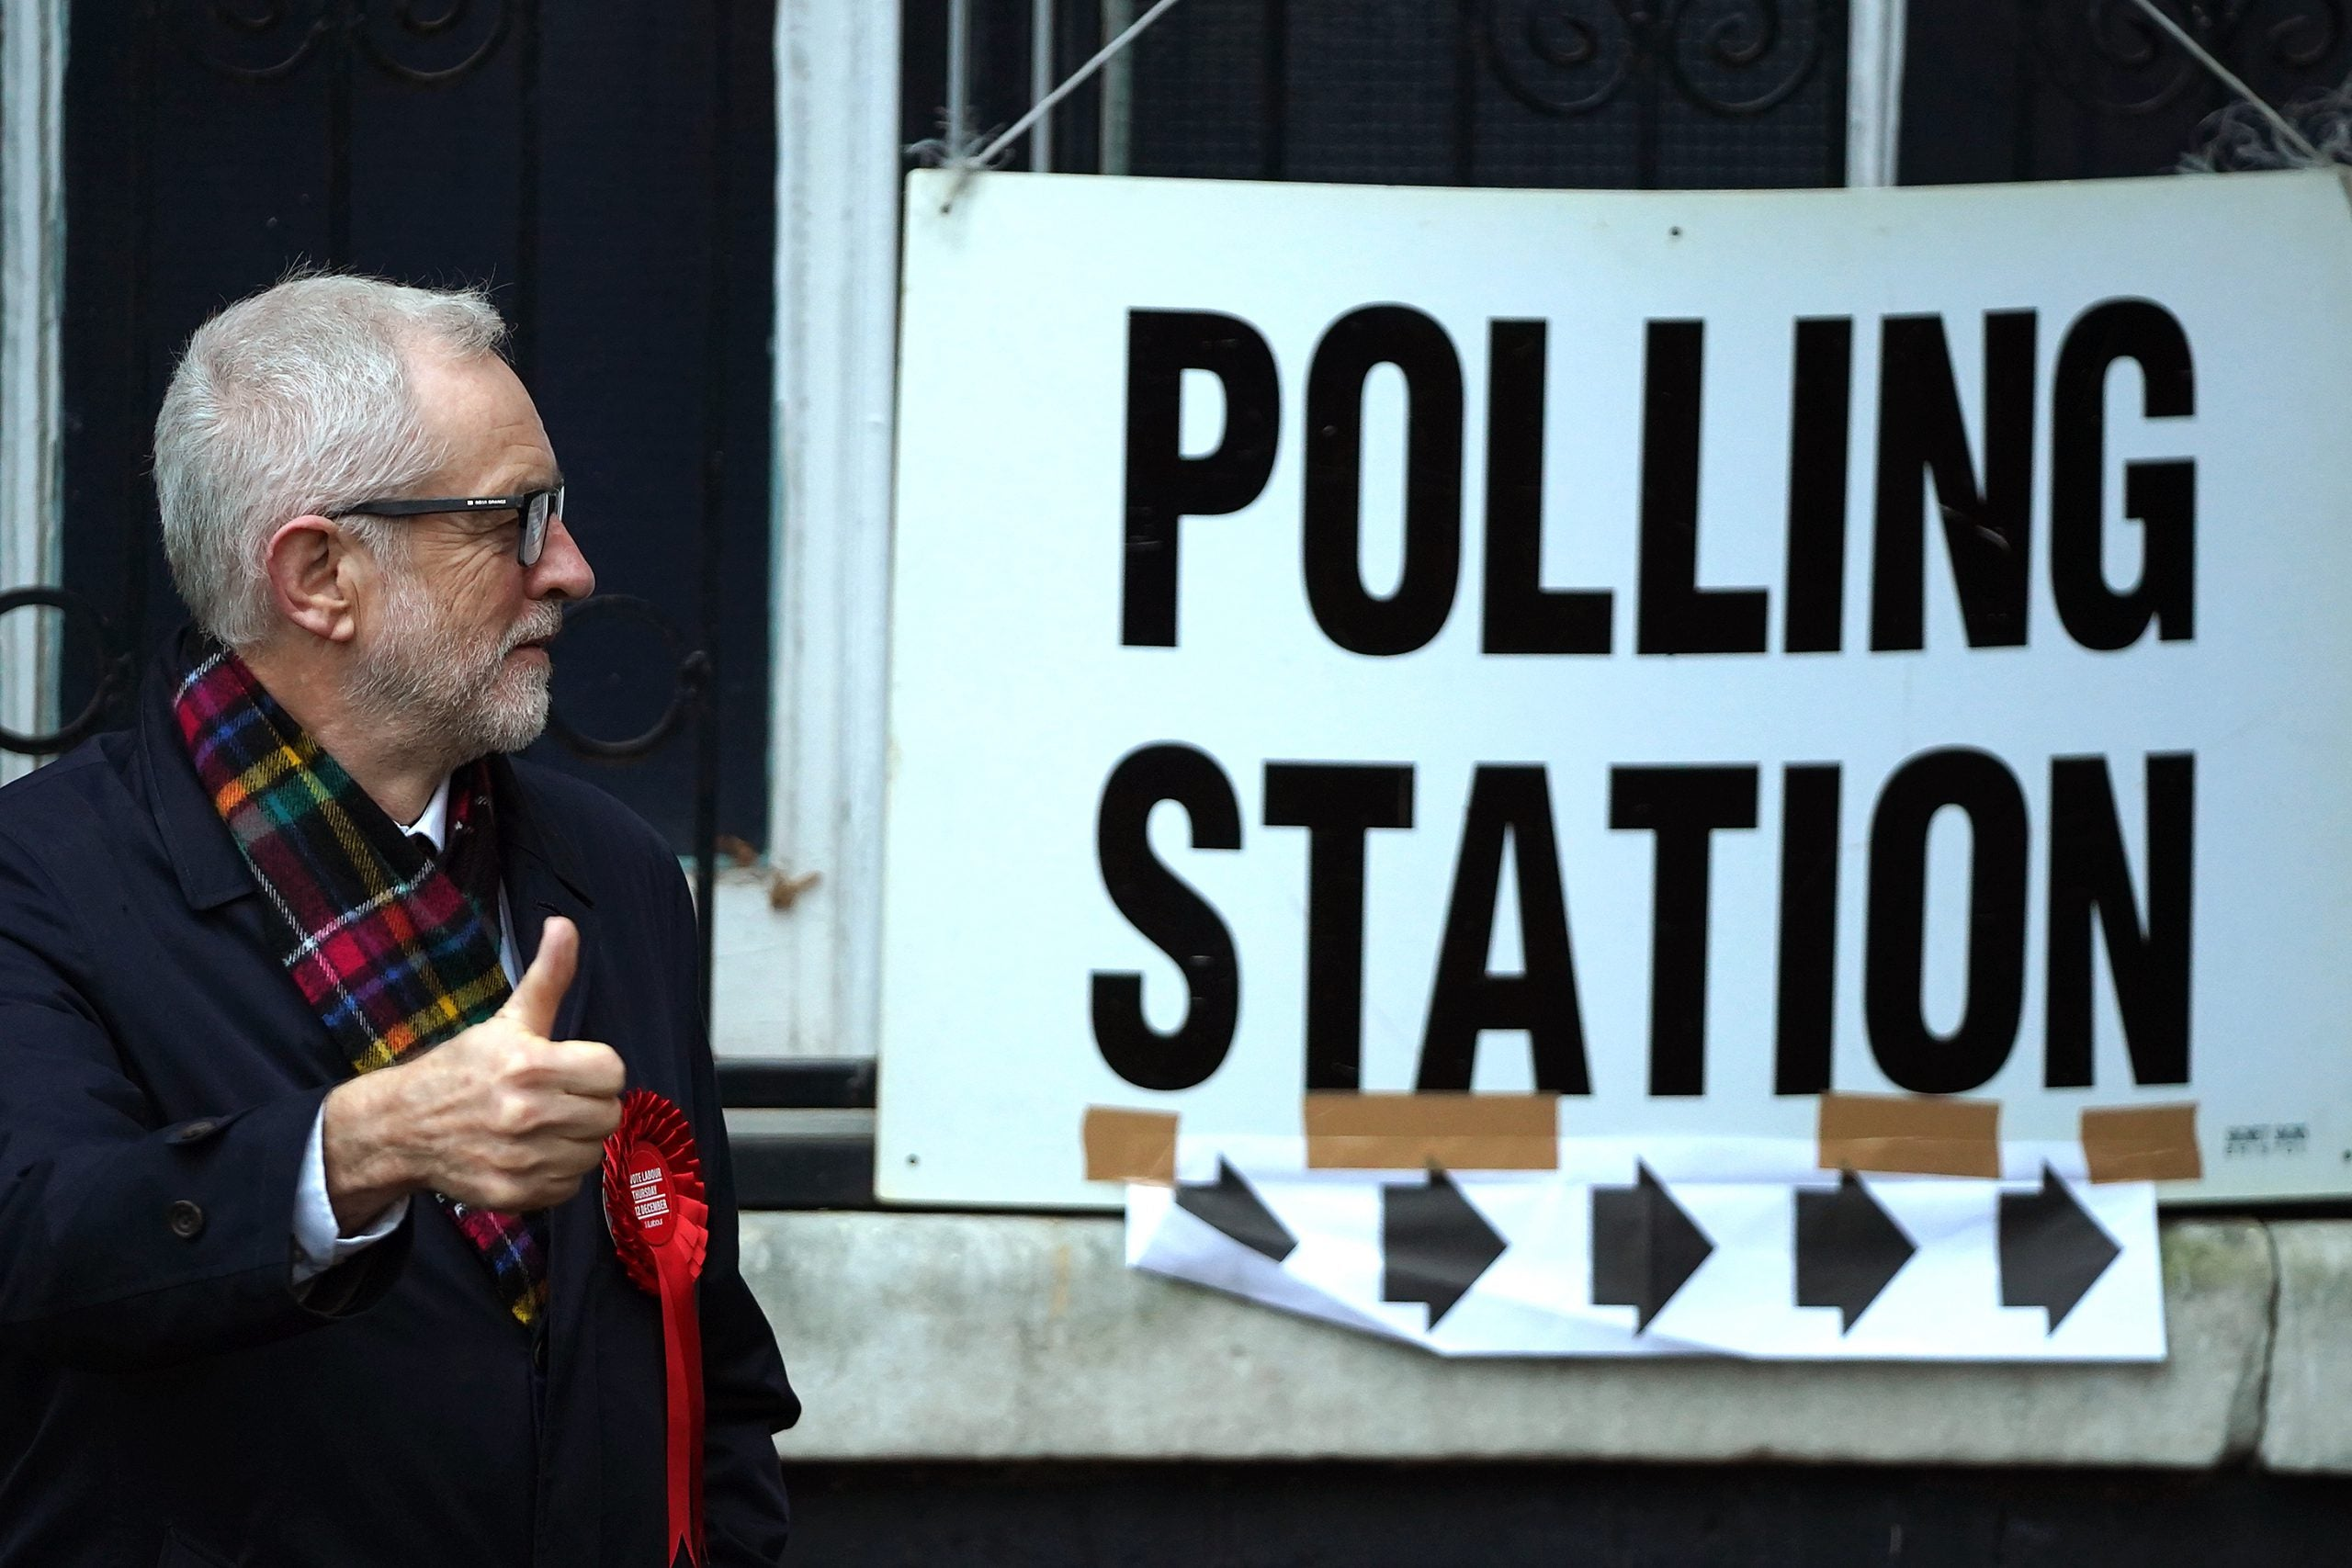 Labour's mess is the predictable result of a leader and philosophy hated by voters